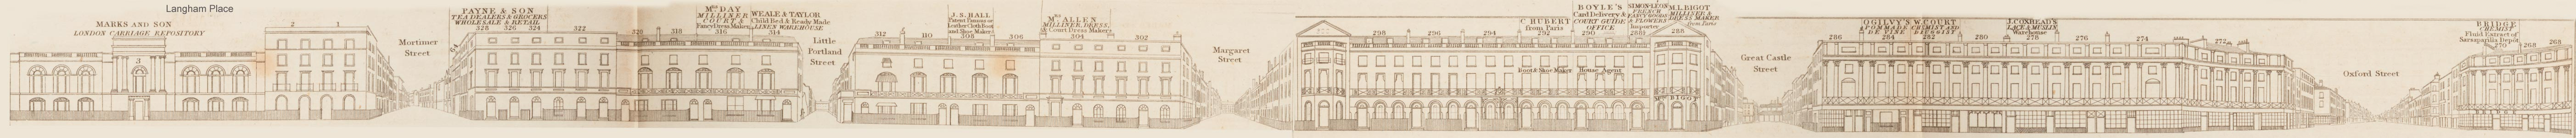 map - Tallis's London street views : No. 16. Regent Street, division 1 (east)